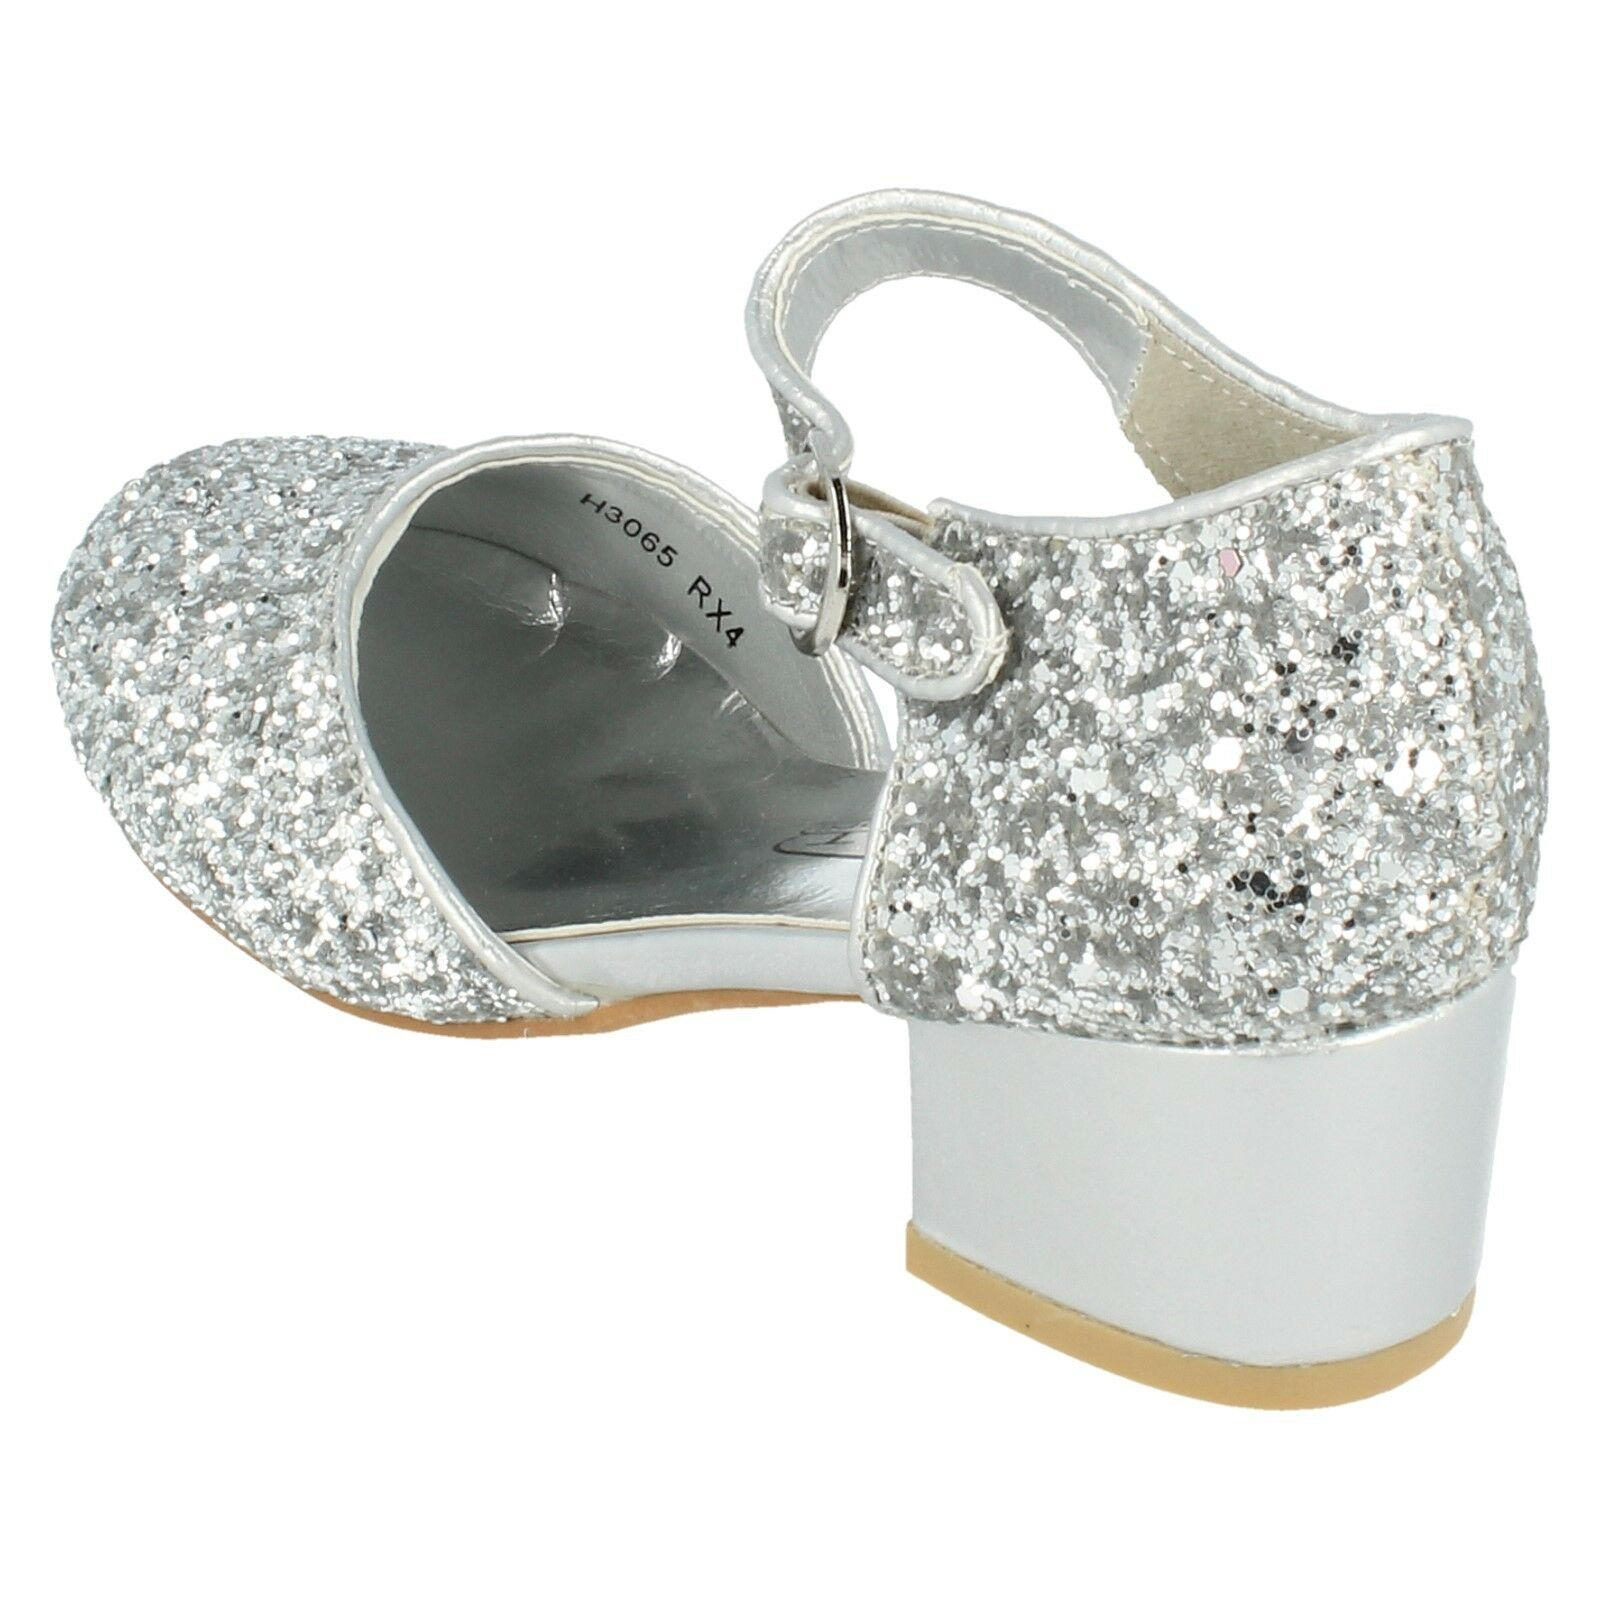 6b5dae761b Girls H3065 Glitter Court Shoe by Spot On Retail Price £17.99